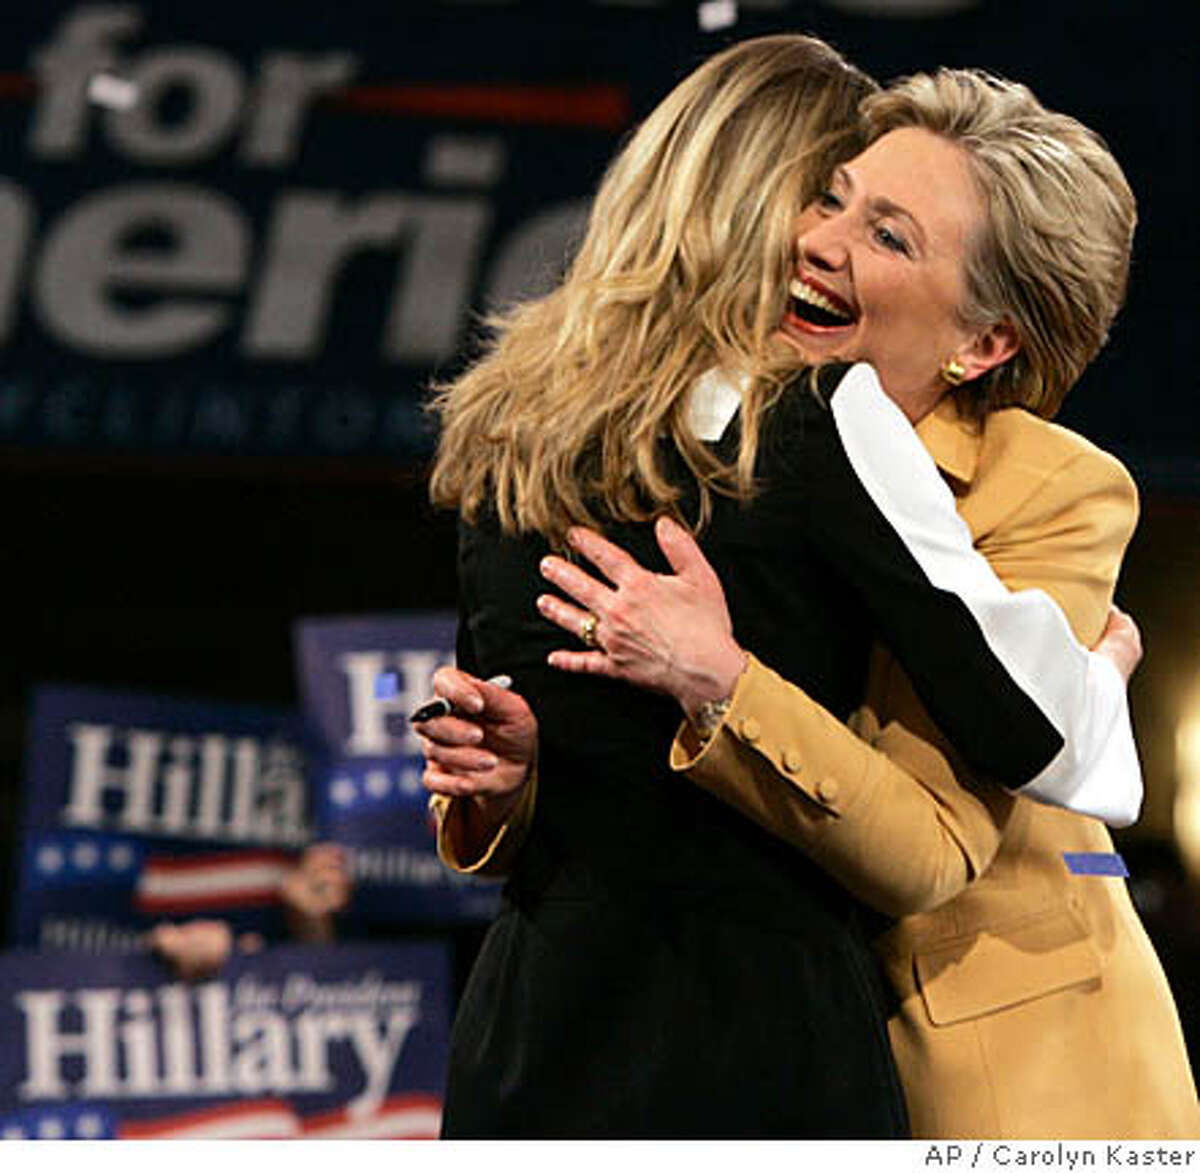 Democratic presidential hopeful Sen. Hillary Rodham Clinton, D-N.Y.,hugs her daughter, Chelsea at her Super Tuesday primary night rally in New York, Tuesday, Feb. 5, 2008. (AP Photo/Carolyn Kaster)